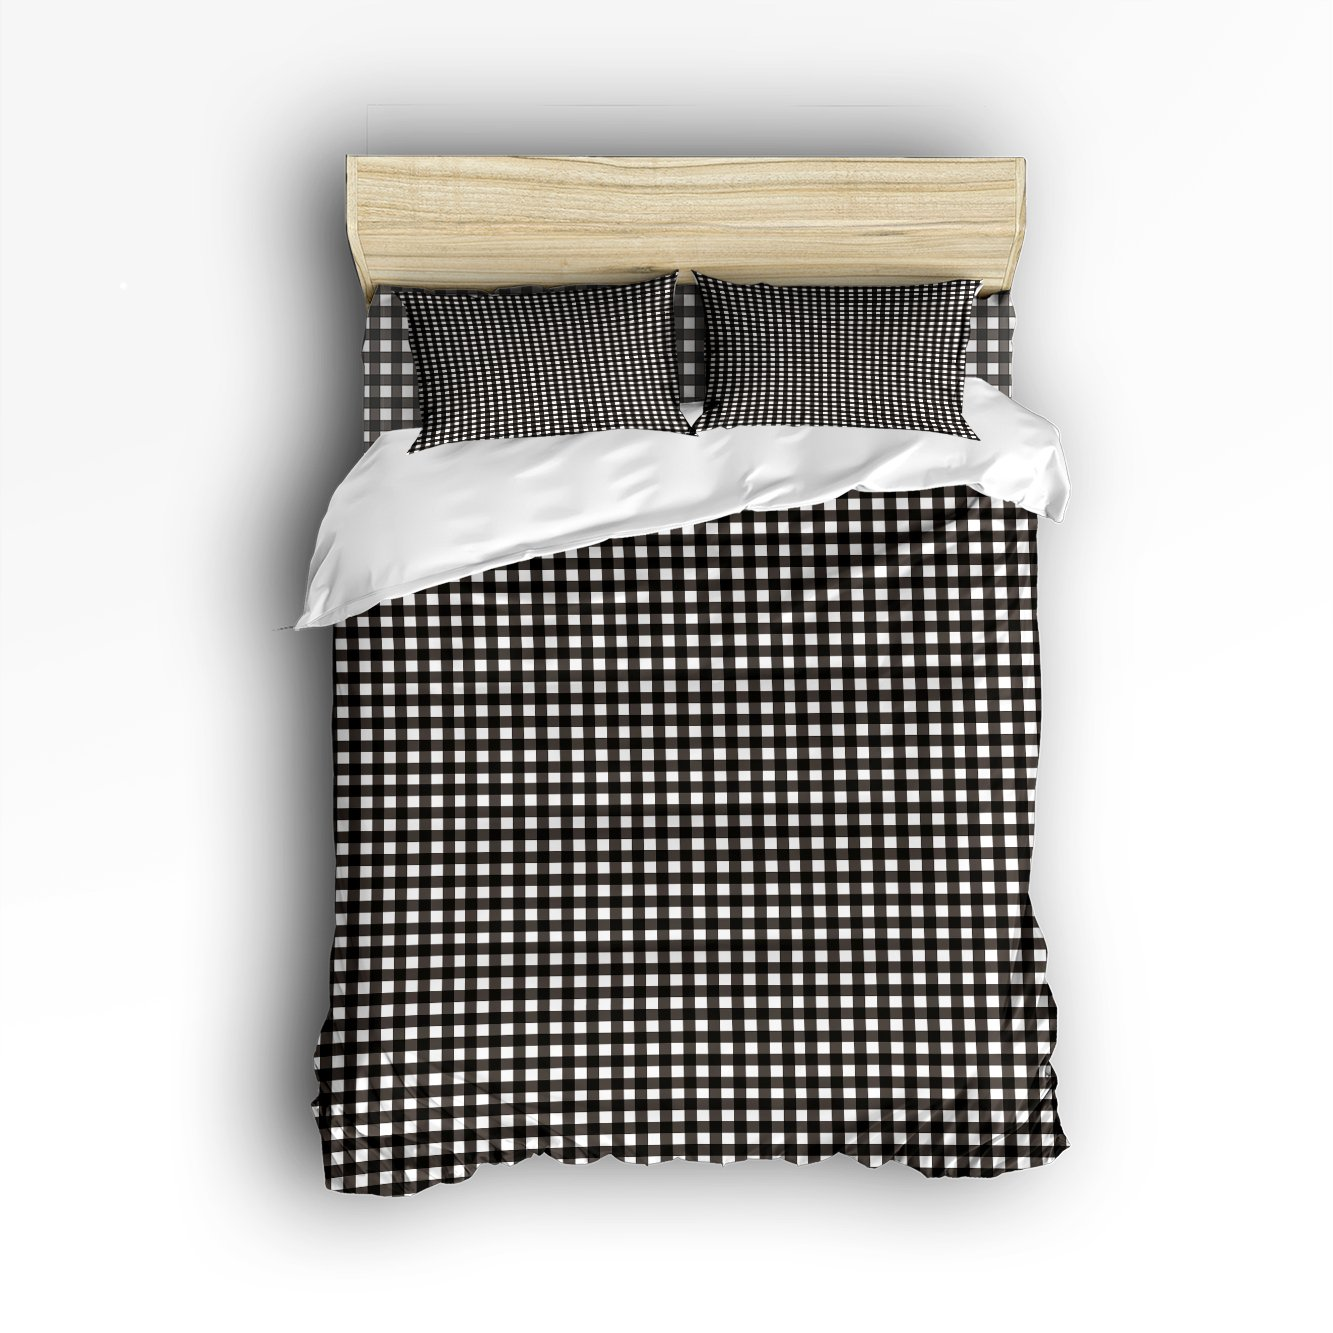 Libaoge 4 Piece Bed Sheets Set, Black White Buffalo Check Plaid Pattern, 1 Flat Sheet 1 Duvet Cover and 2 Pillow Cases